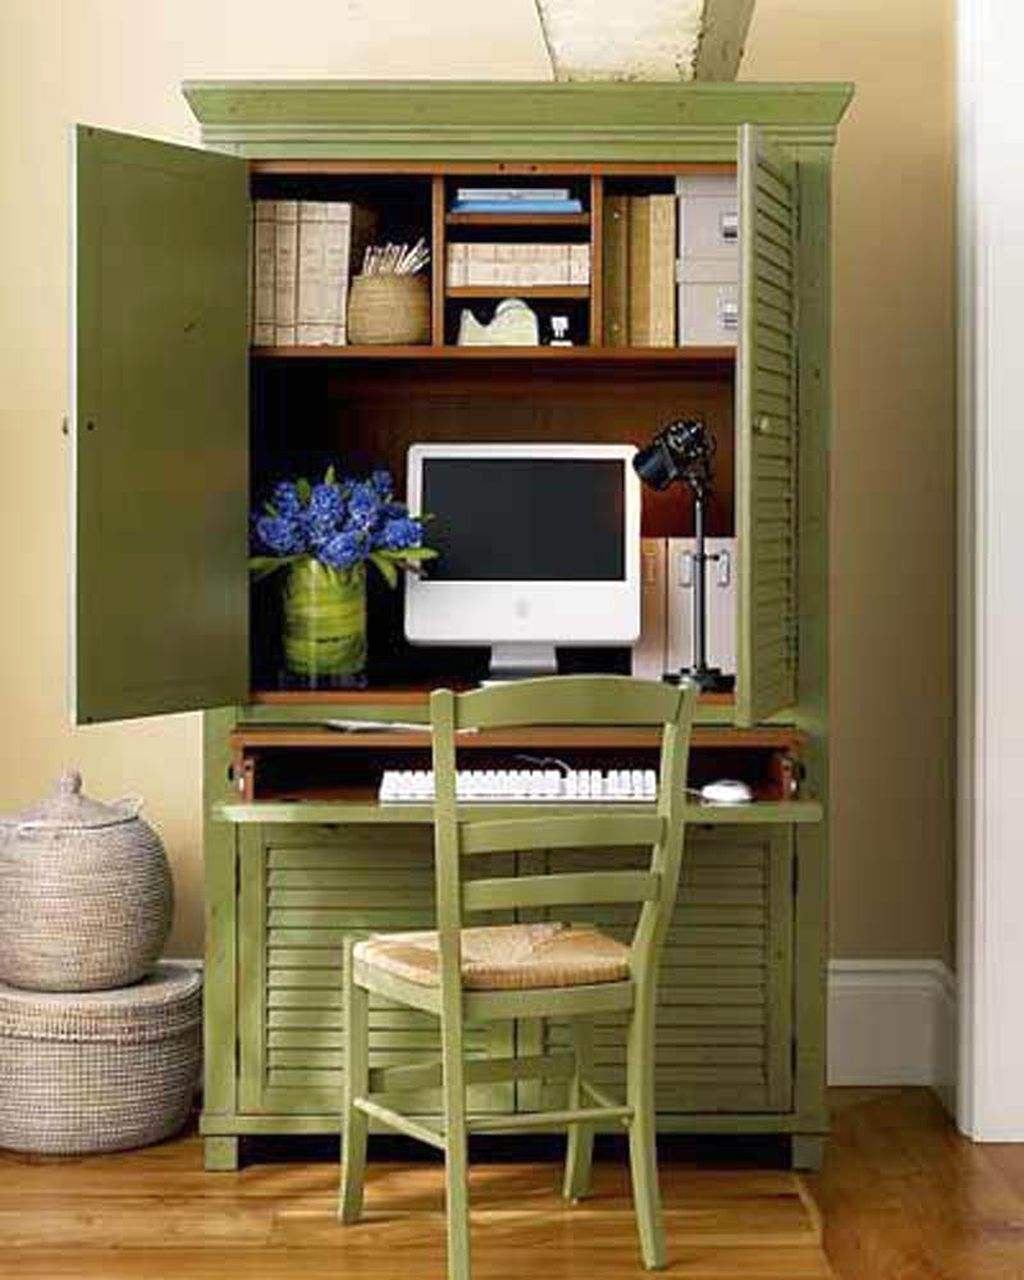 Green cupboard home office design ideas for small spaces for Small home office design ideas